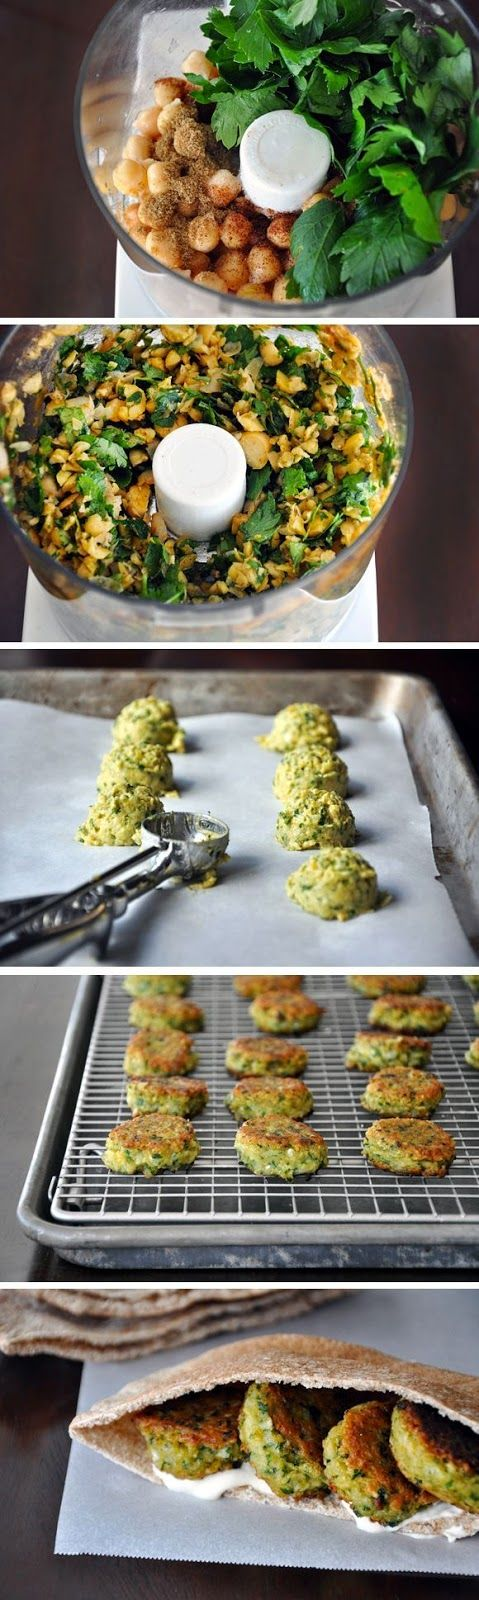 all-food-drink: Homemade Falafel with Tahini Sauce